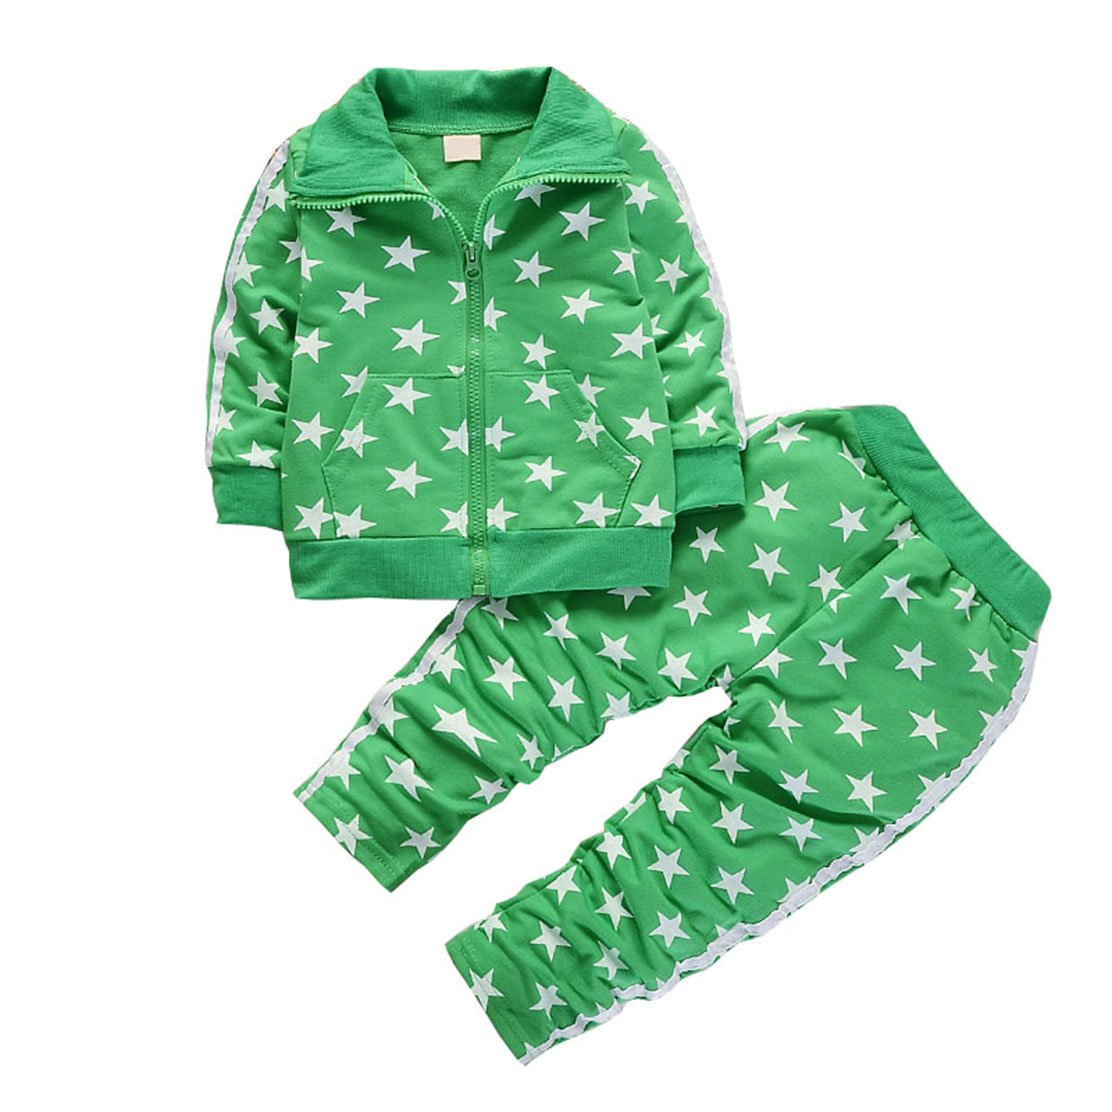 Children Clothing Sets 2pcs Coat+Pants Fashion Stars Baby Boy Sport Suit Kids Autumn Tracksuit Green 4t